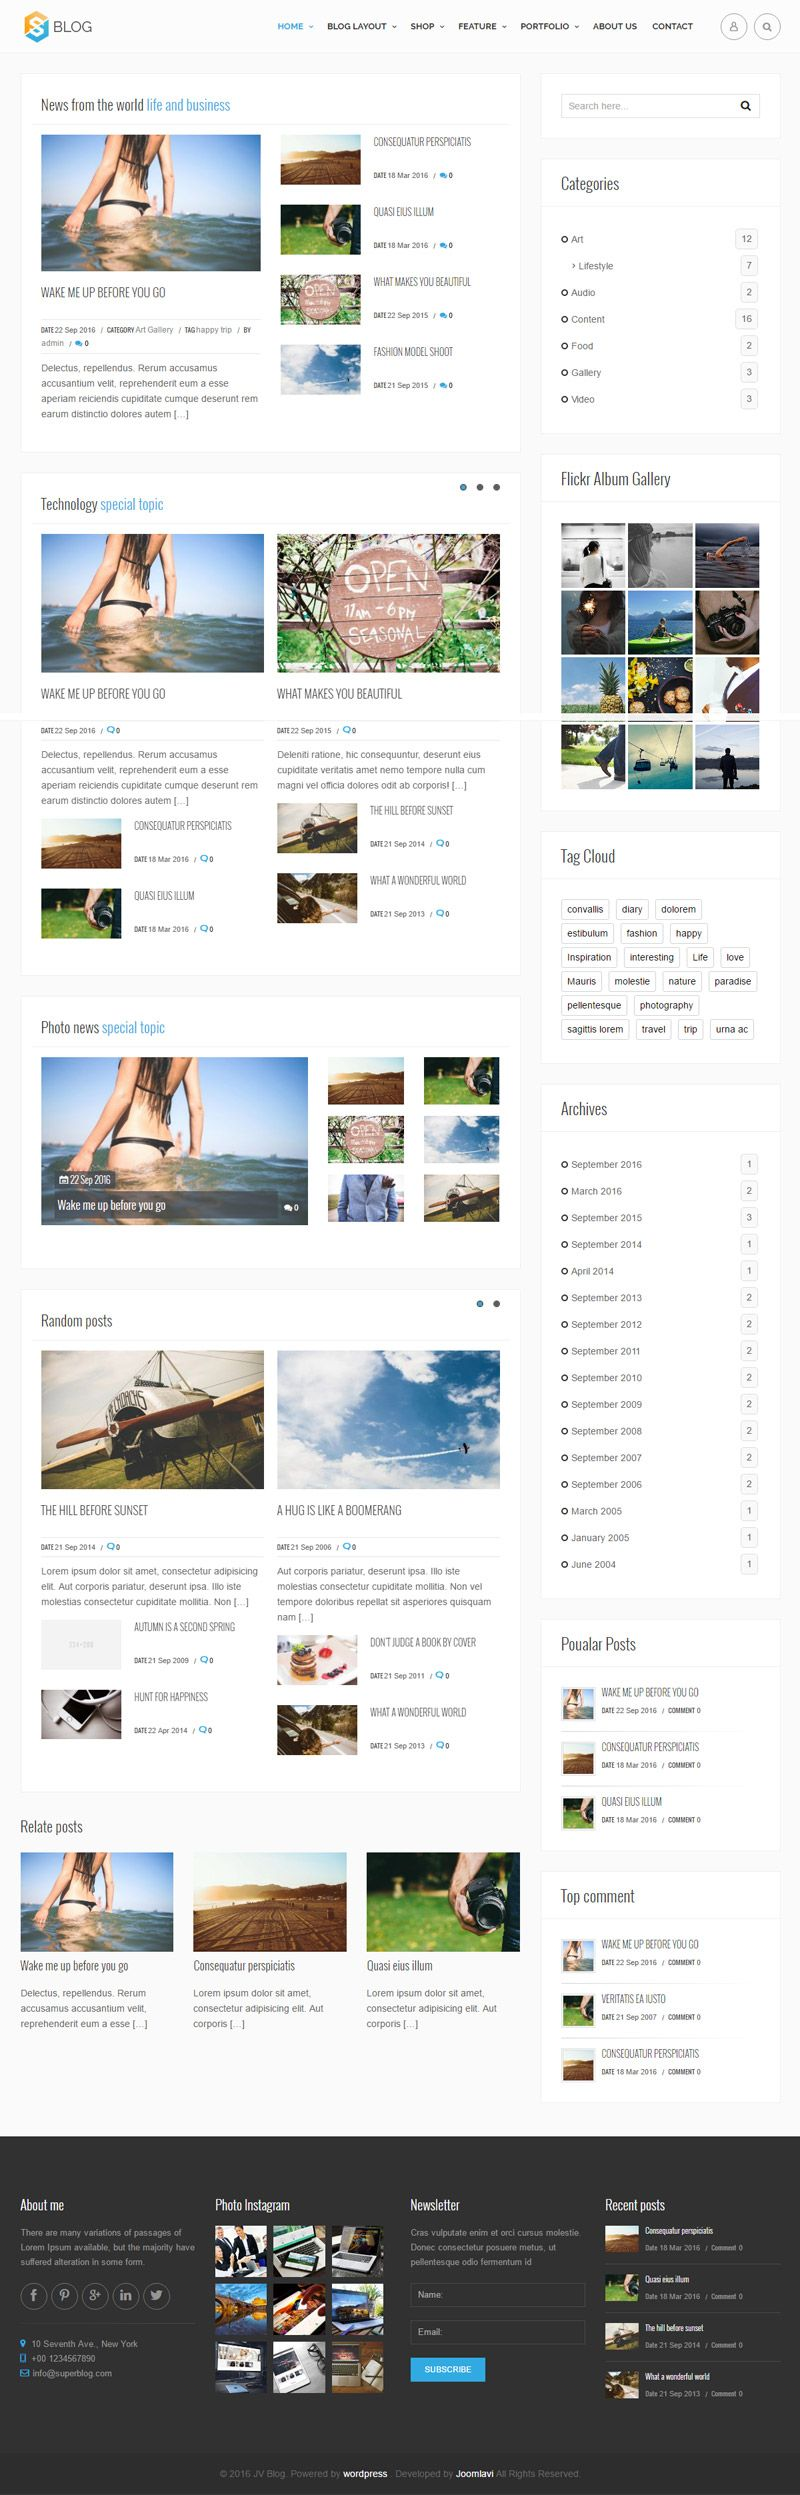 Jv Blog - Responsive WordPress Theme Screenshot 2